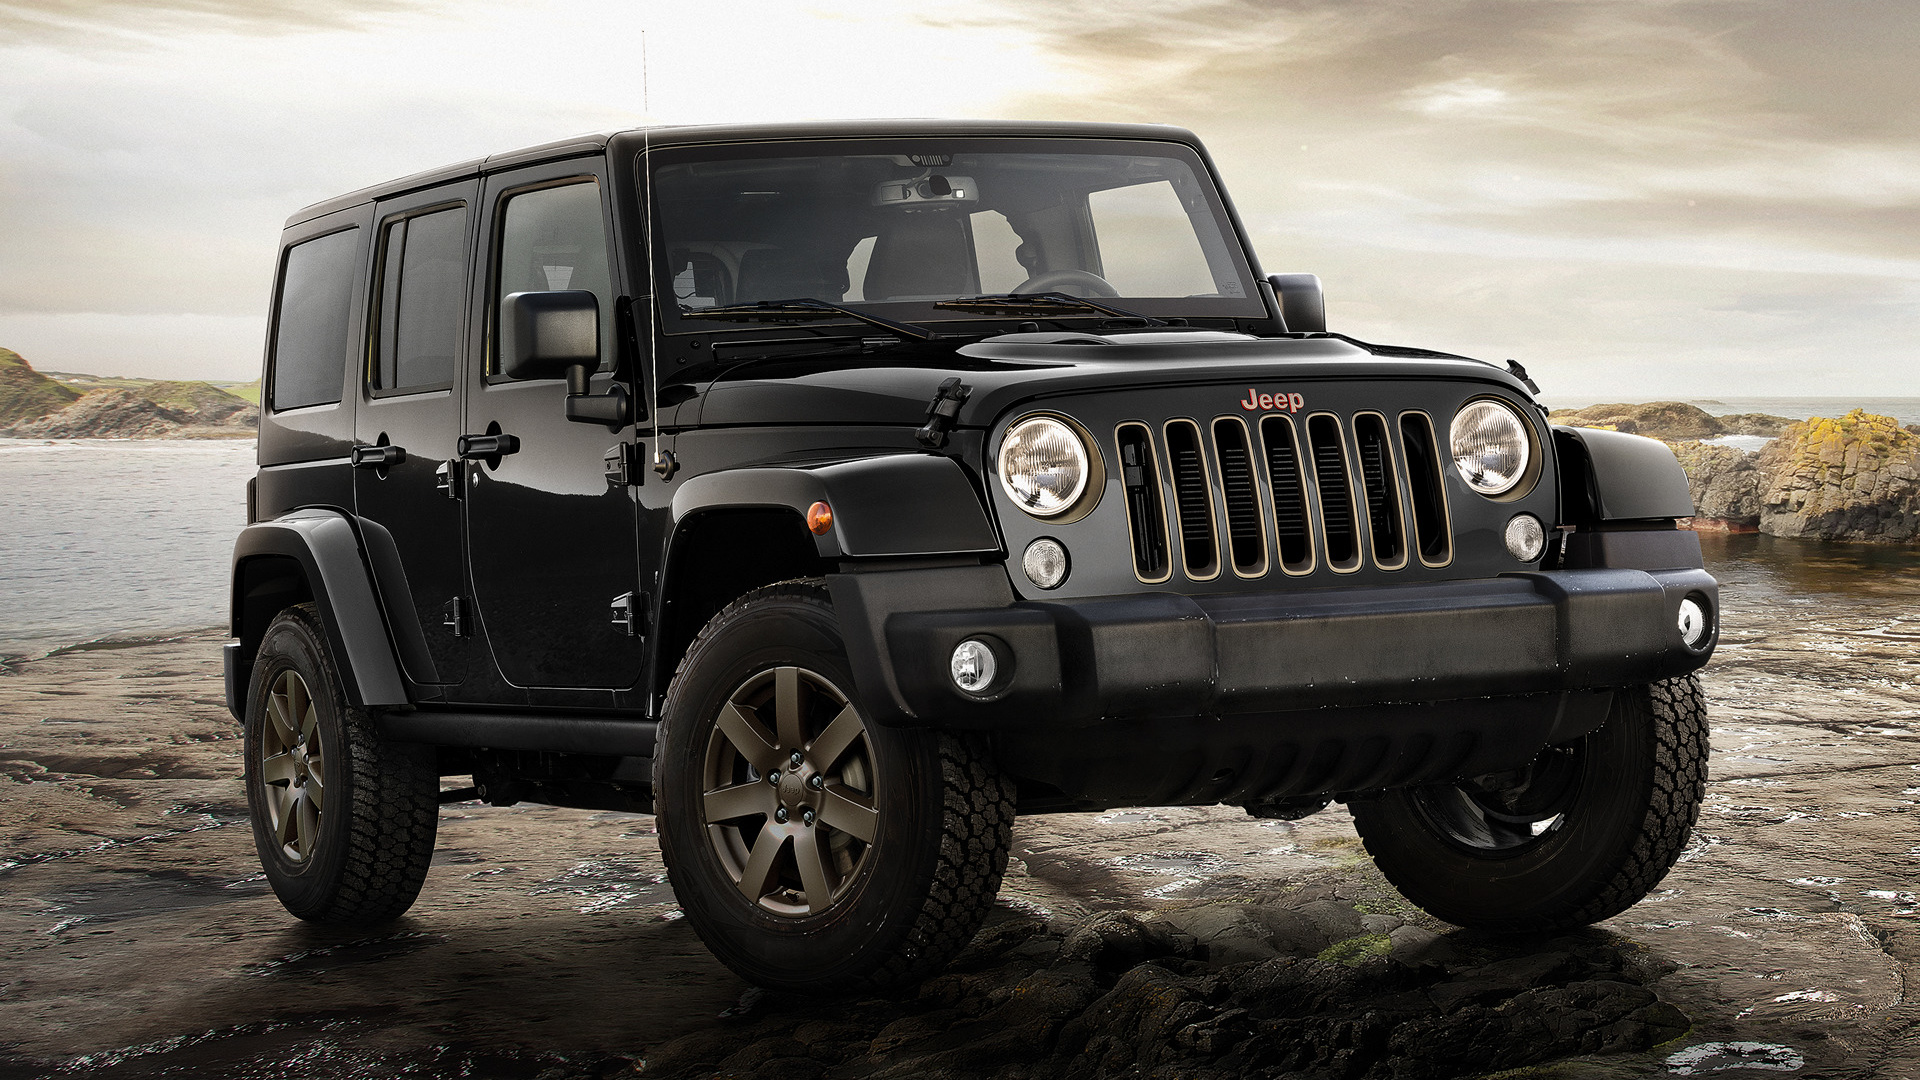 Jeep Wrangler Unlimited 75th Anniversary 2016 EU Wallpapers And HD